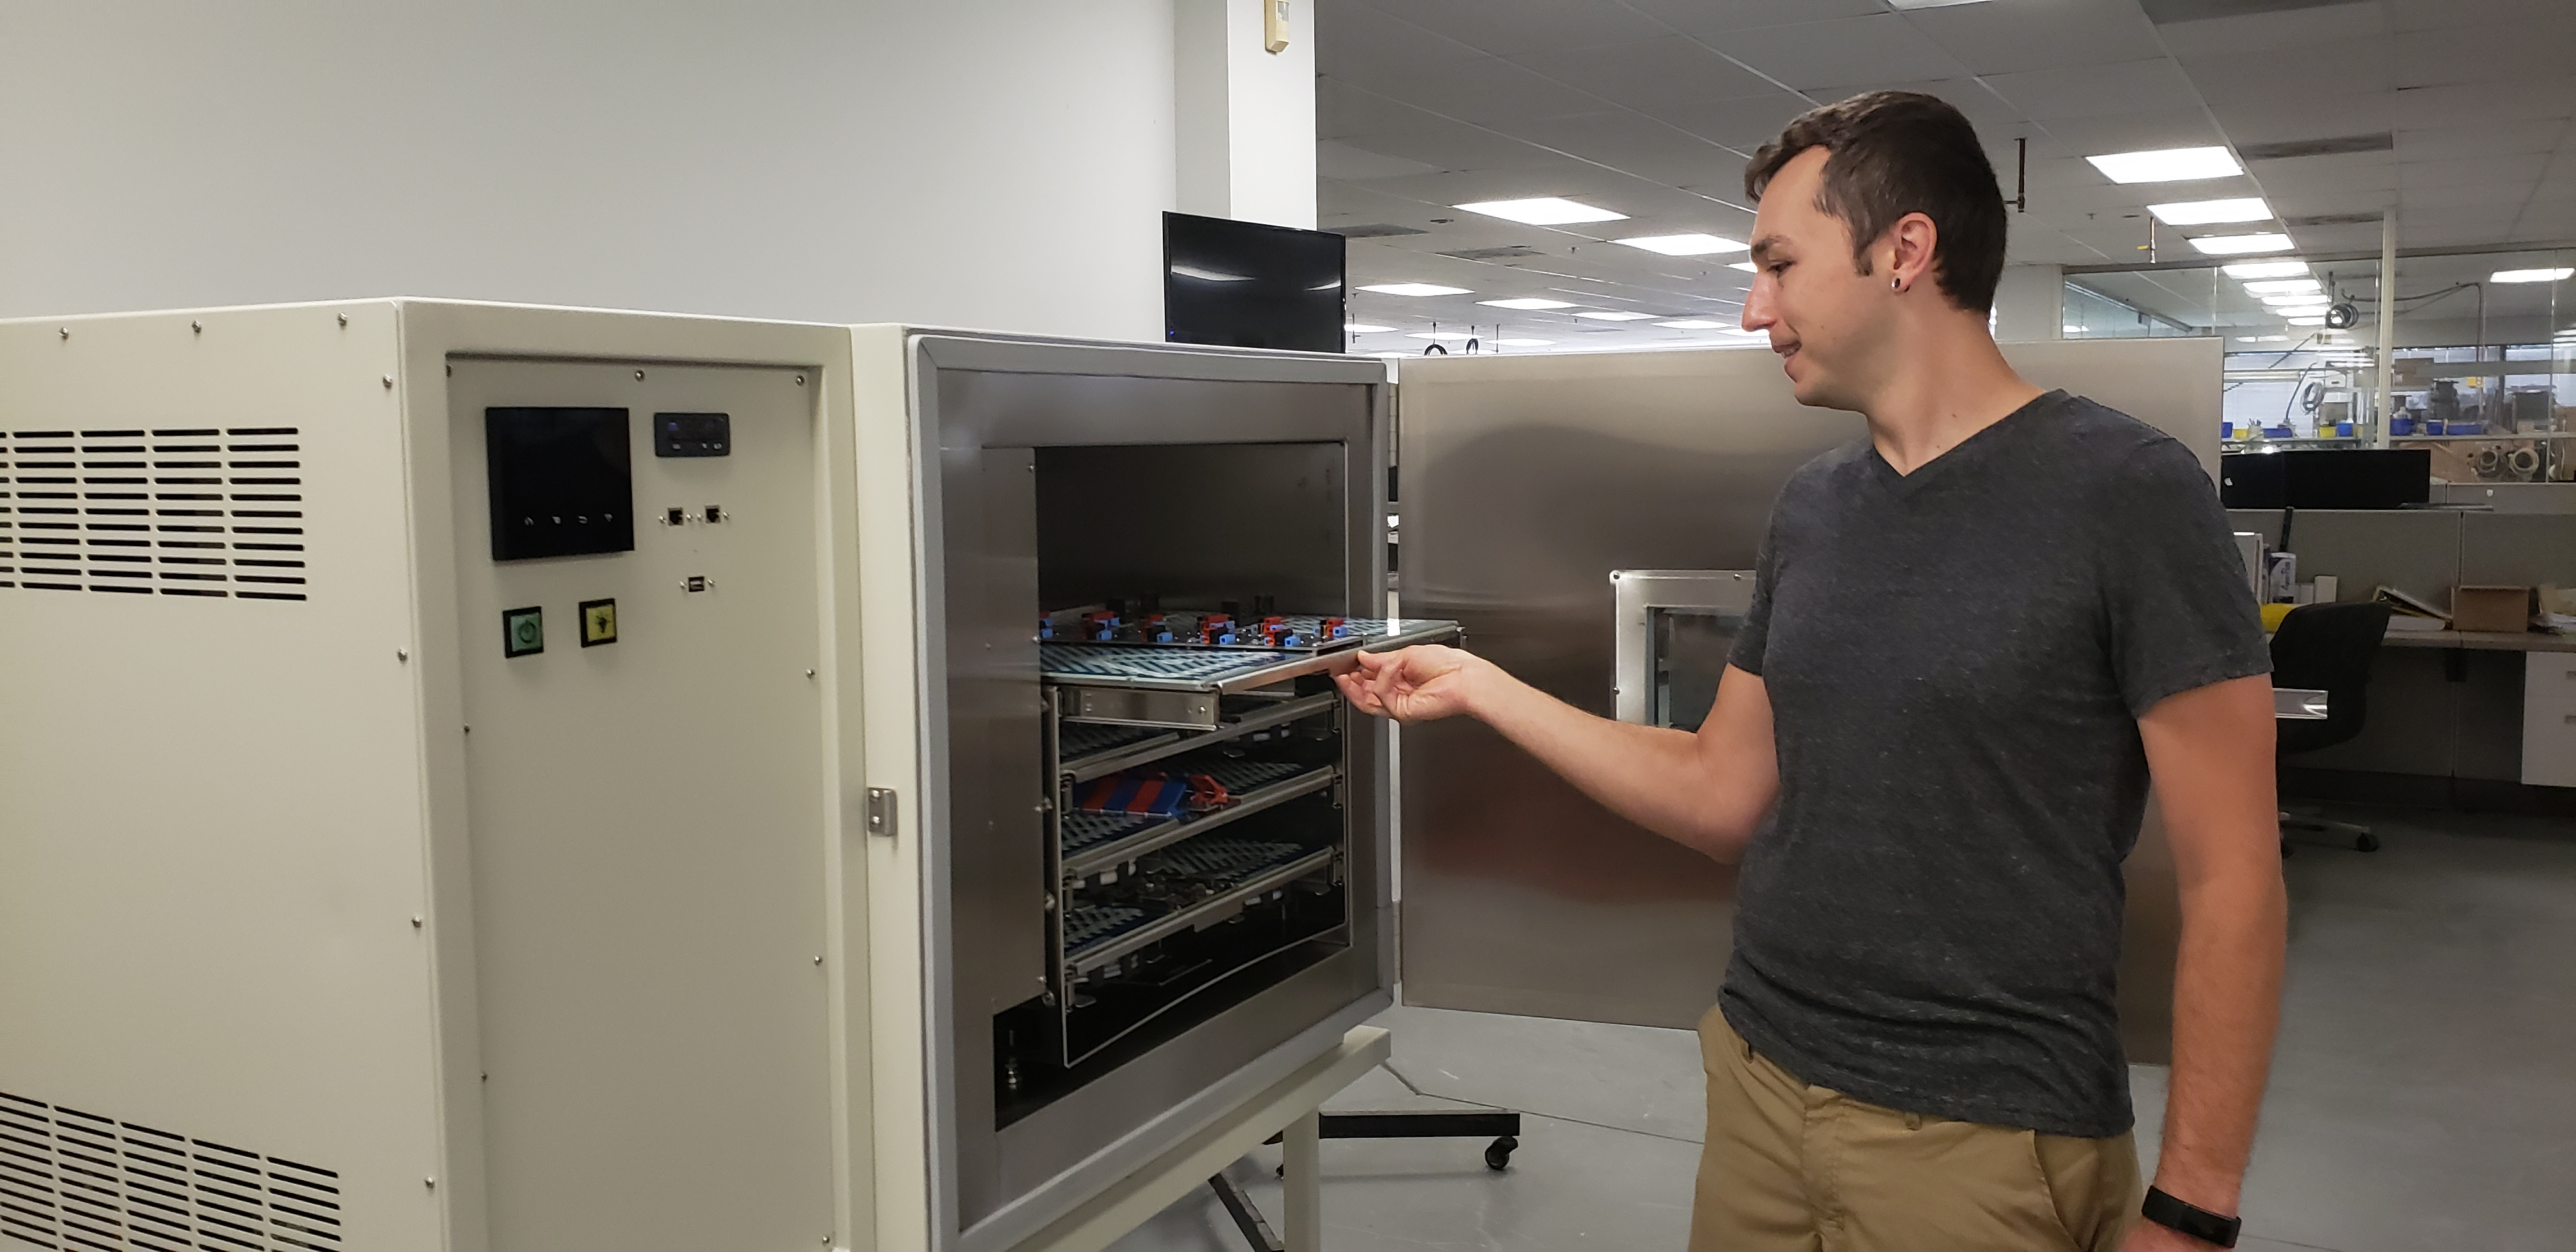 mitch-opening-atplarge batch battery test fixture increases battery testing efficiency.